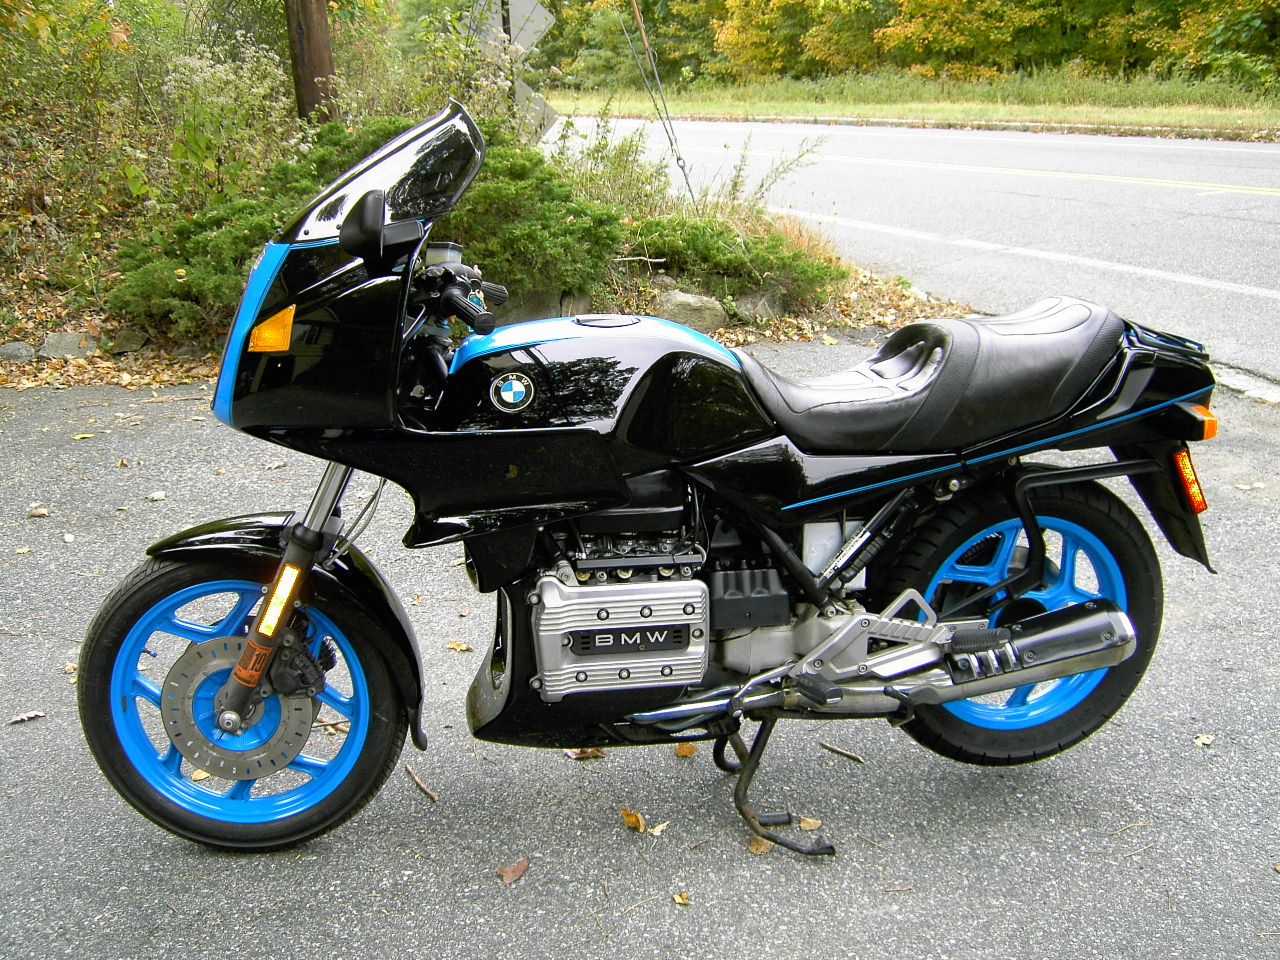 we sell quality used k-bike parts for your bmw motorcycle  all of our used  bmw motorcycle parts carry a money back guarantee so there is no risk